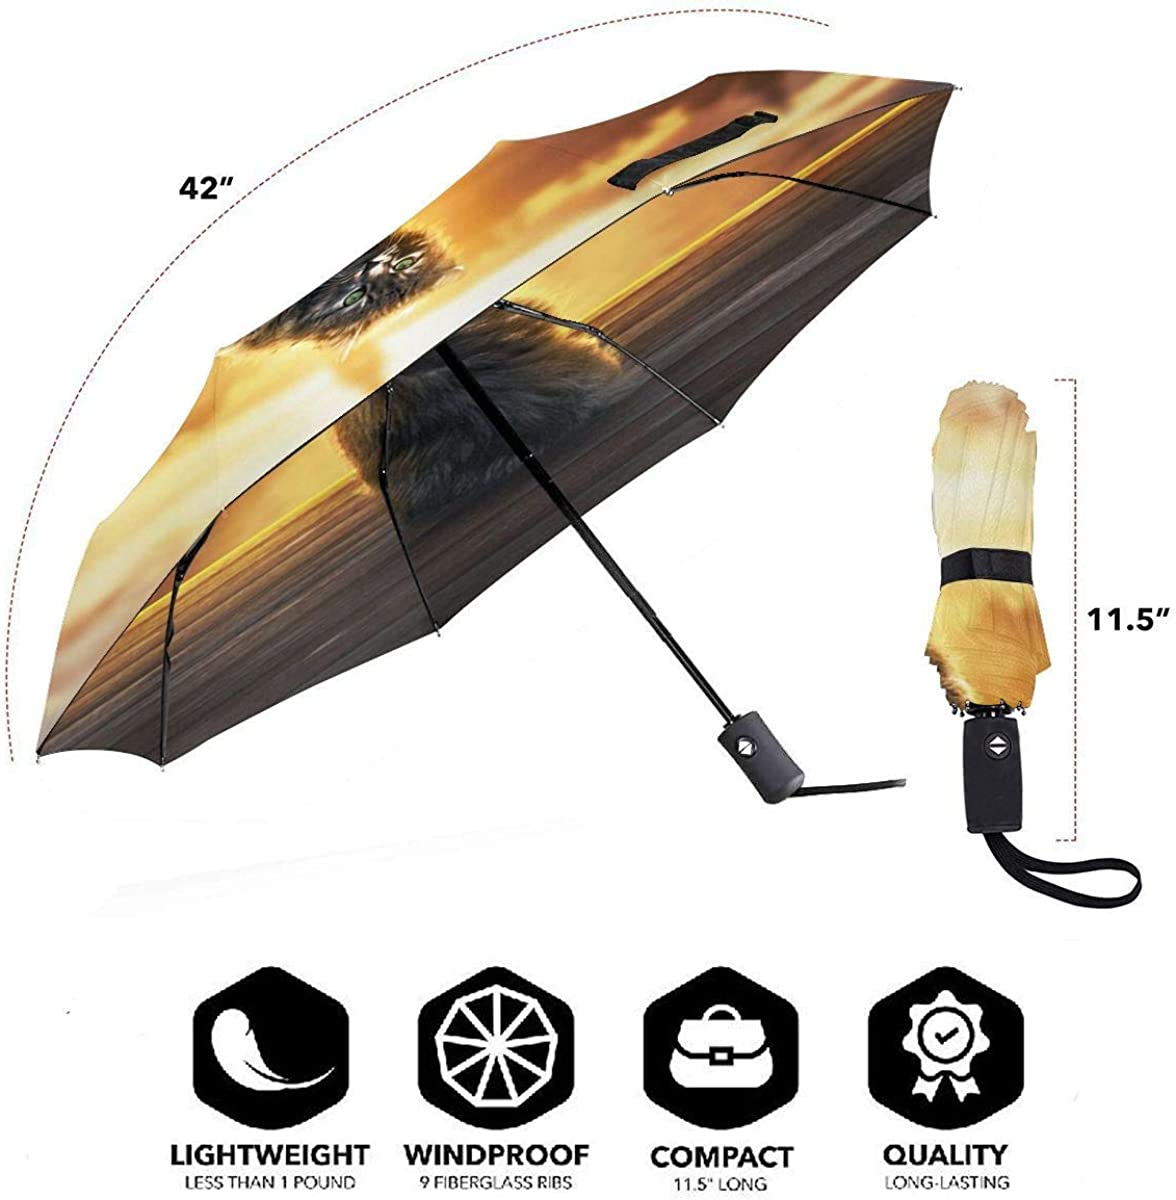 Cat Fluffy Sunlight Glance Wallpaper Compact Travel Umbrella Windproof Reinforced Canopy 8 Ribs Umbrella Auto Open And Close Button Customized